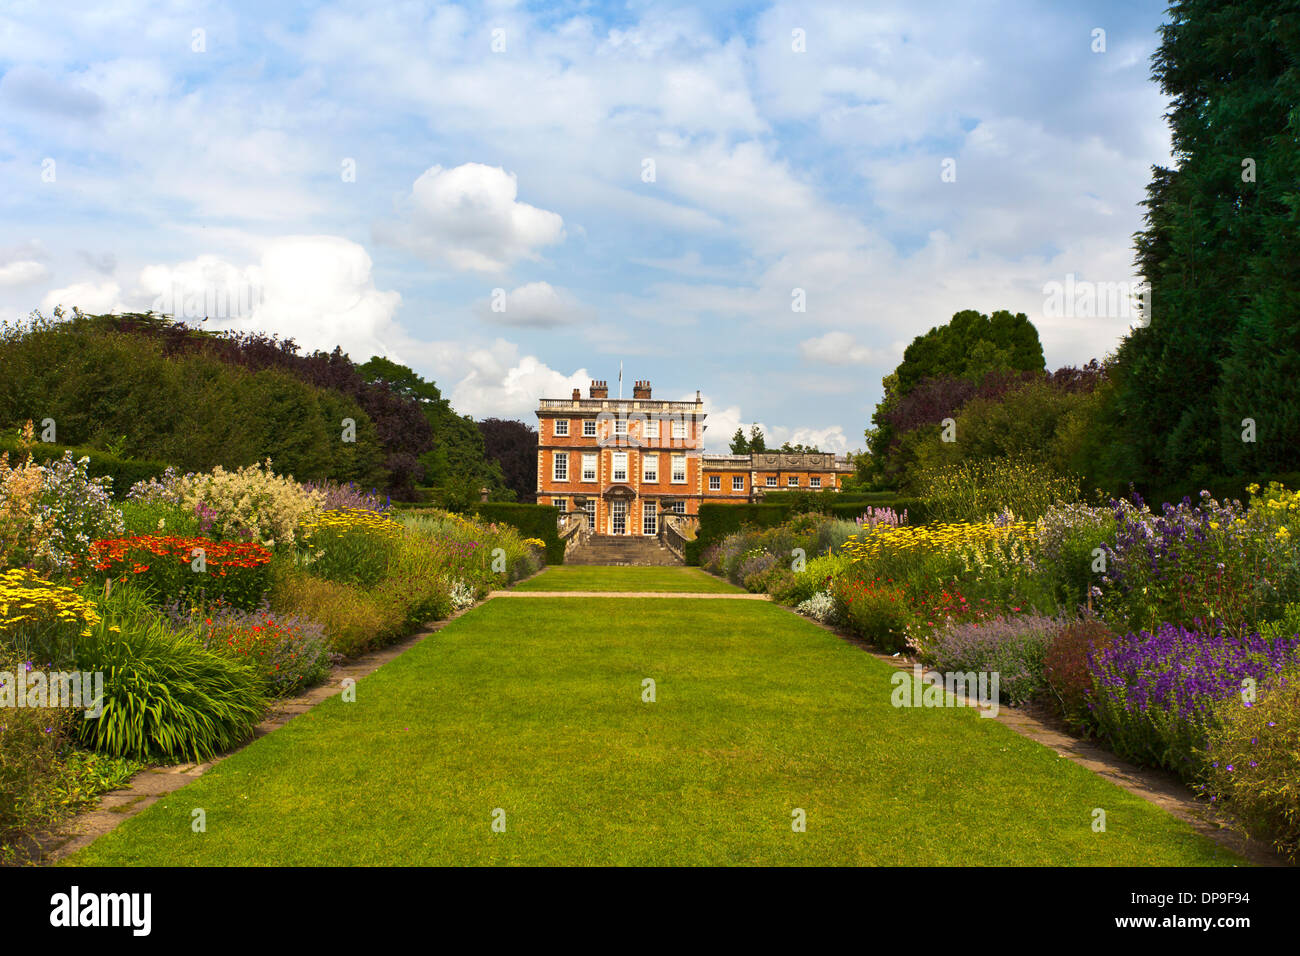 Landscaped garden of an English stately home. - Stock Image